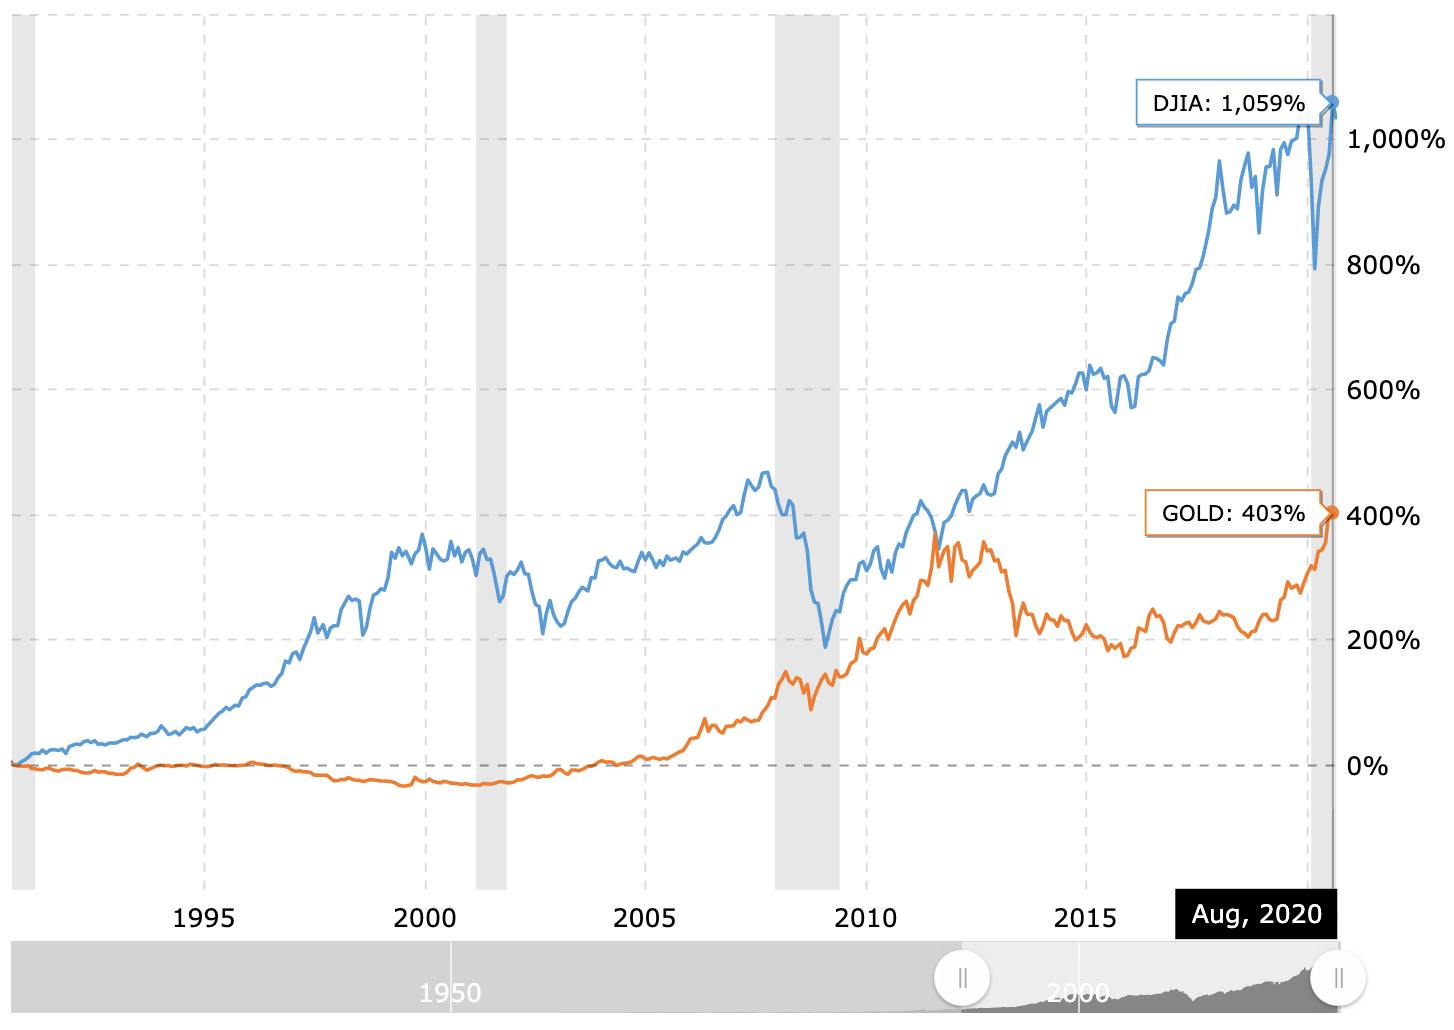 Gold versus the Dow Jones Industrial Average